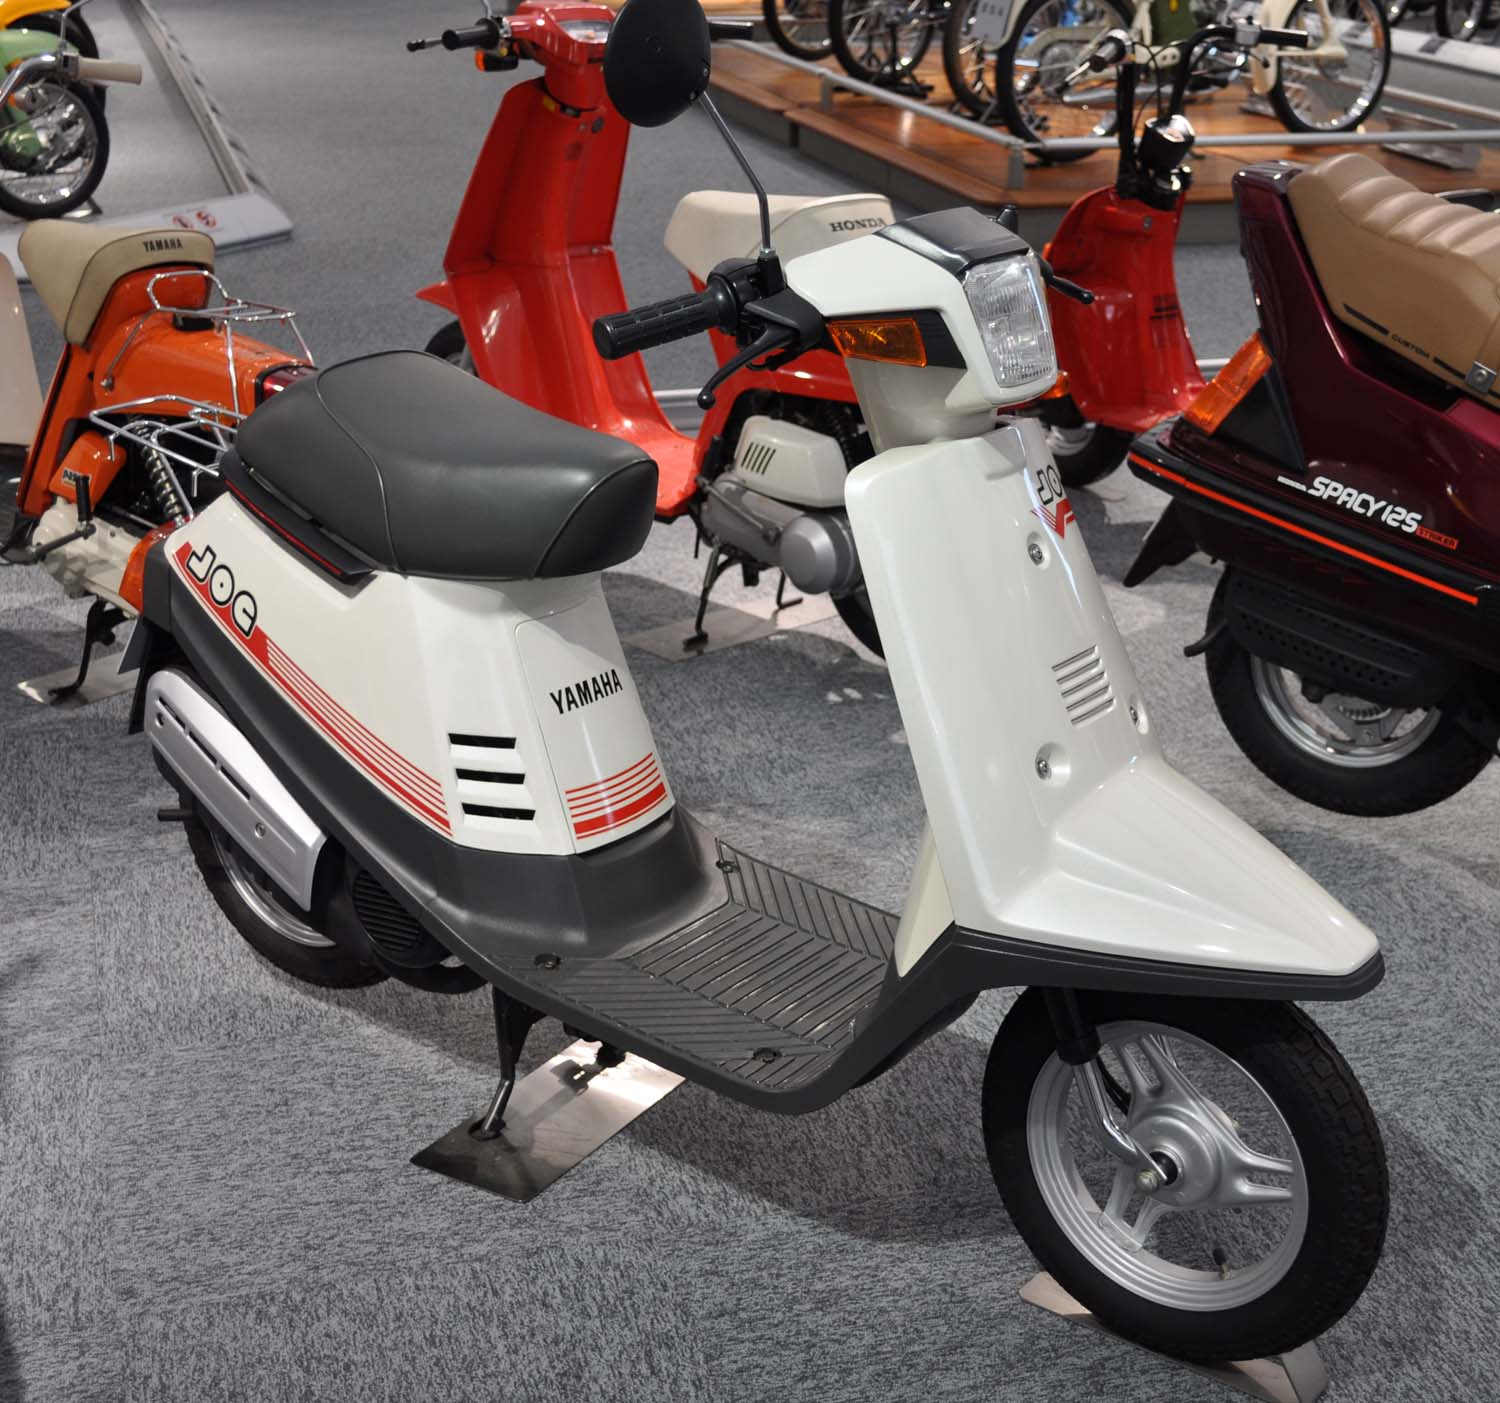 Yamaha History Of Products